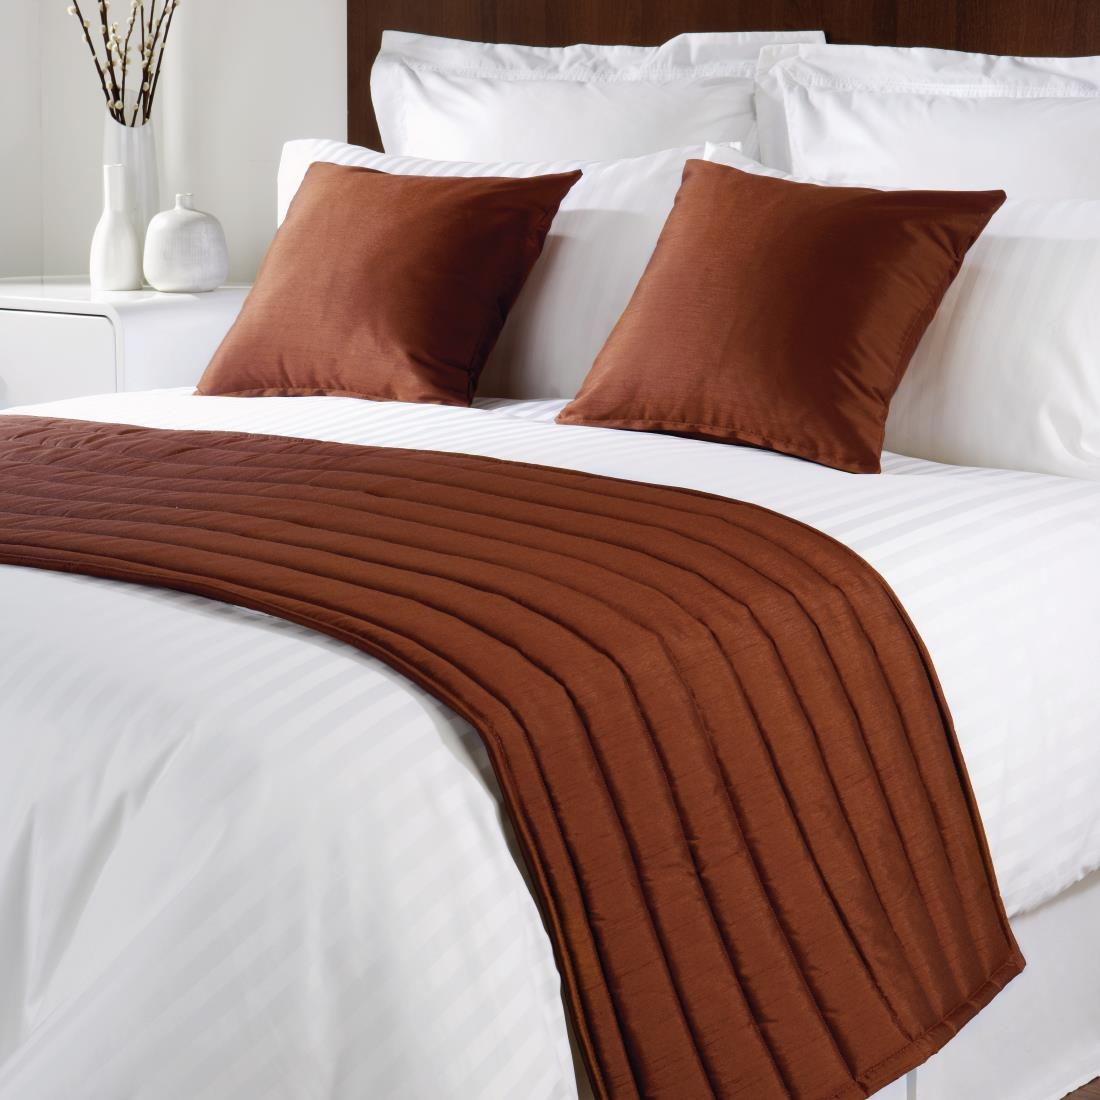 Mitre Comfort Simplicity Chocolate Bed Runner Double